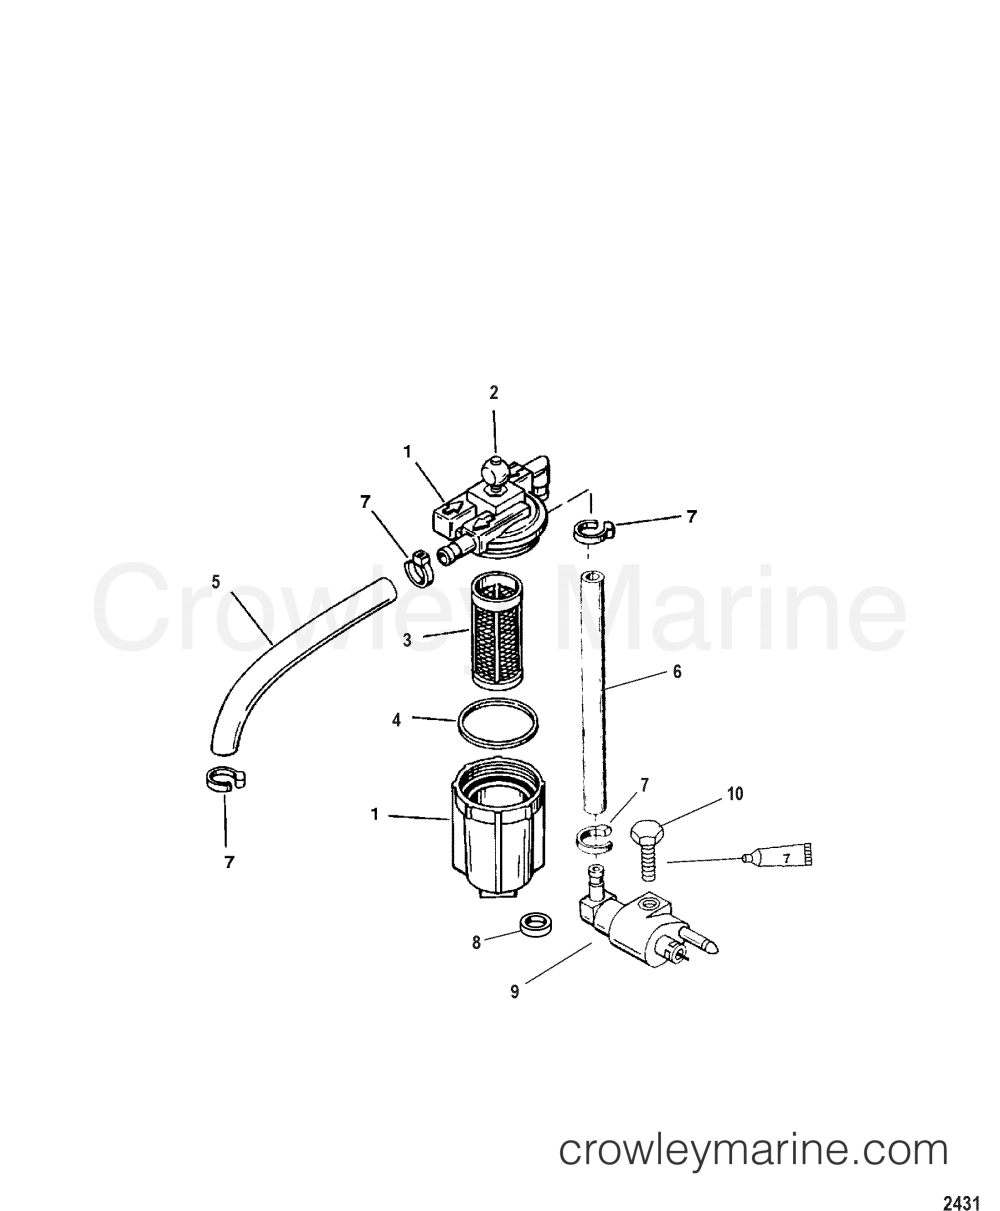 medium resolution of 1987 mariner outboard 8 ml alt 7008237 fuel filter assembly section